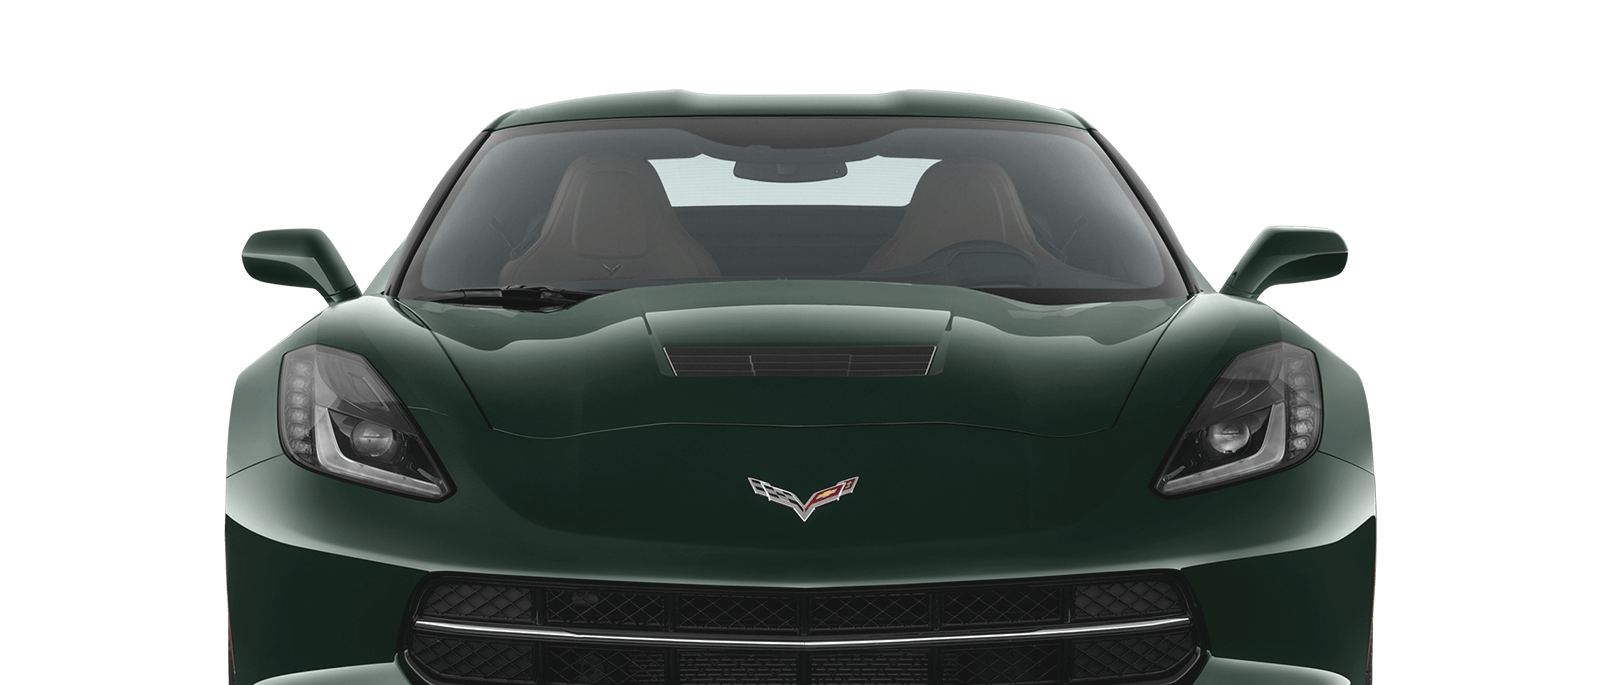 Chevrolet Corvette Stingray Car Rental Exotic Car Collection By